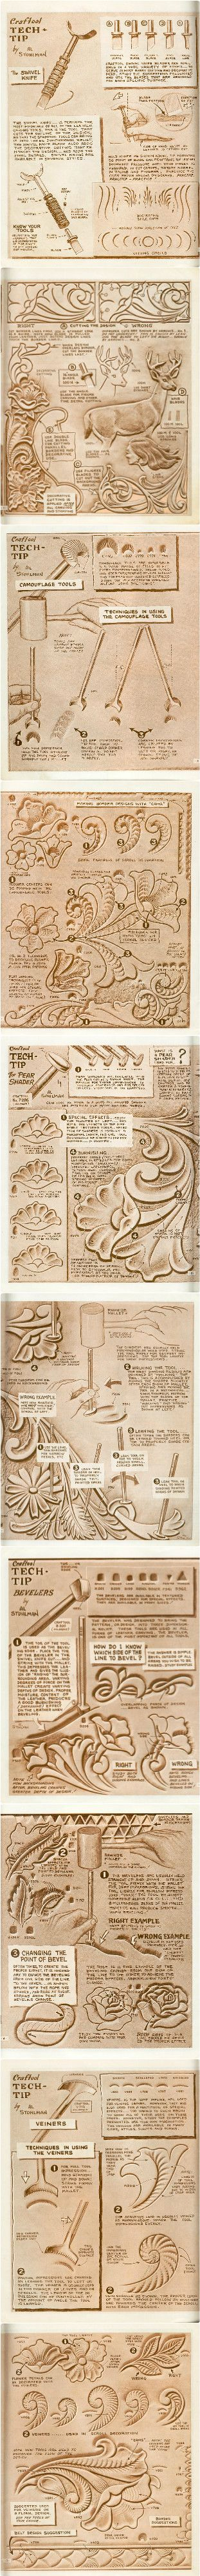 Craftool Tech Tips by Al Stohlman #craftntools #leathertools #leatherwork #leathercraft #leatherart #leather